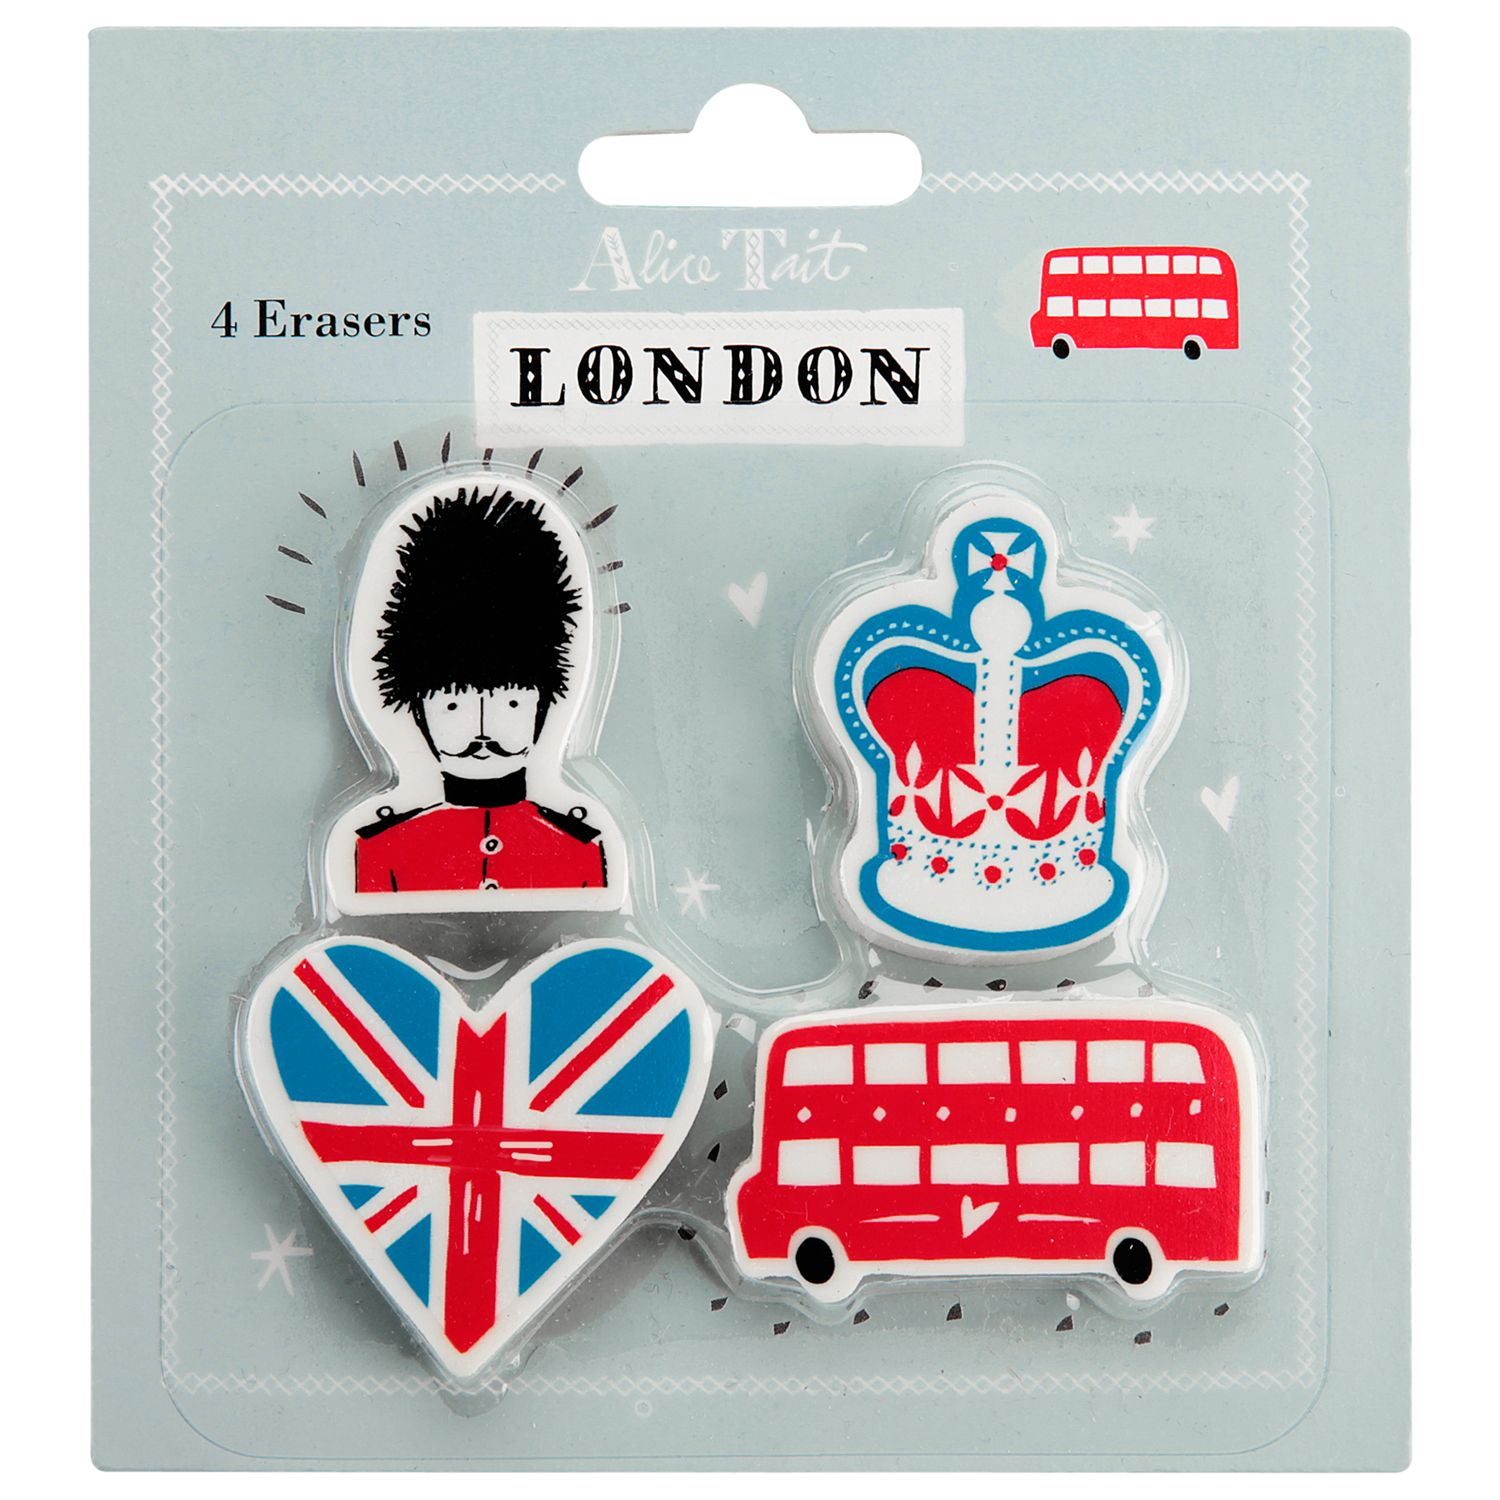 Alice Tait Alice Tait London Eraser Set